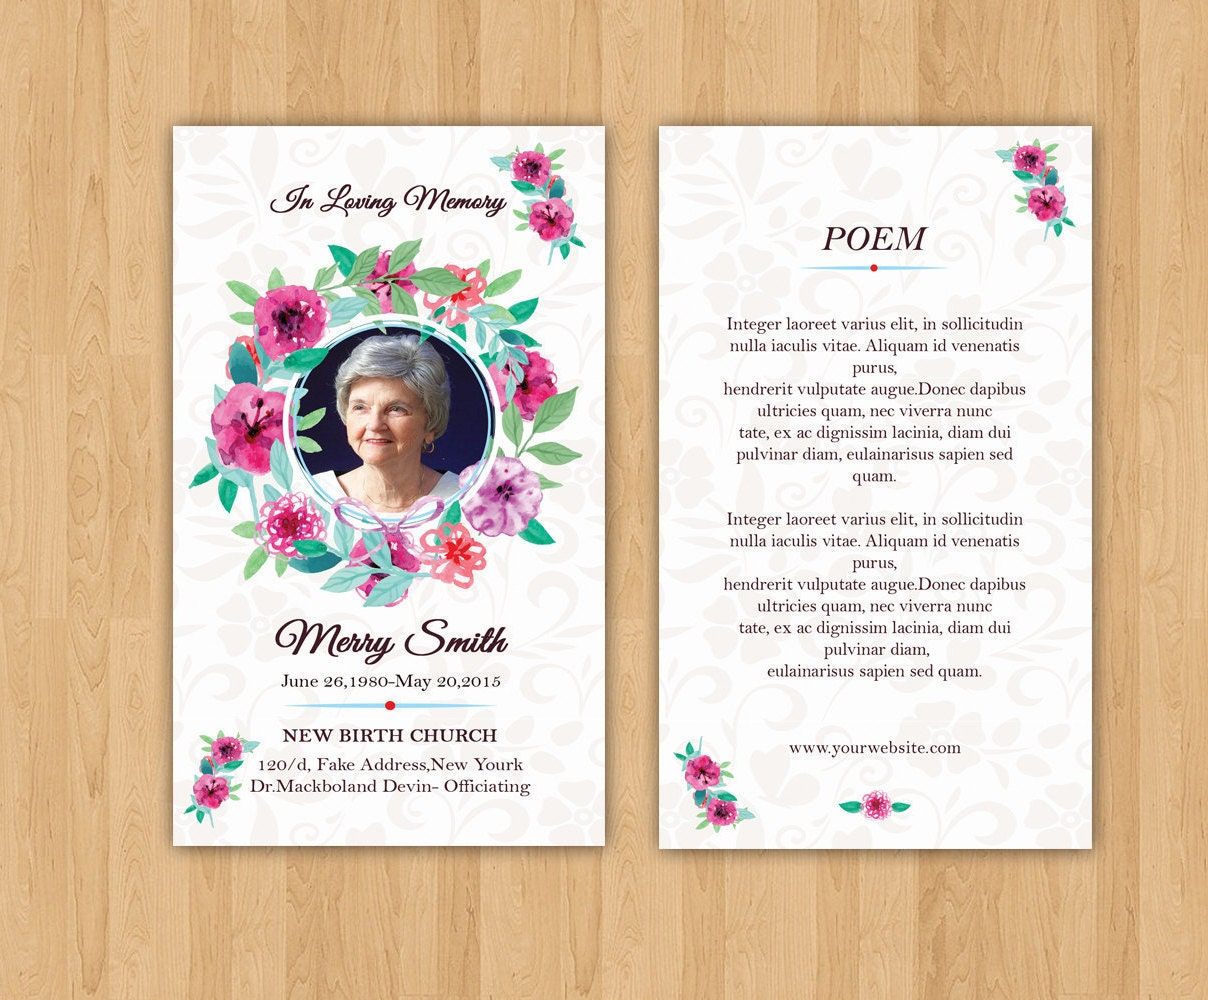 funeral prayer card template editable ms word photoshop. Black Bedroom Furniture Sets. Home Design Ideas